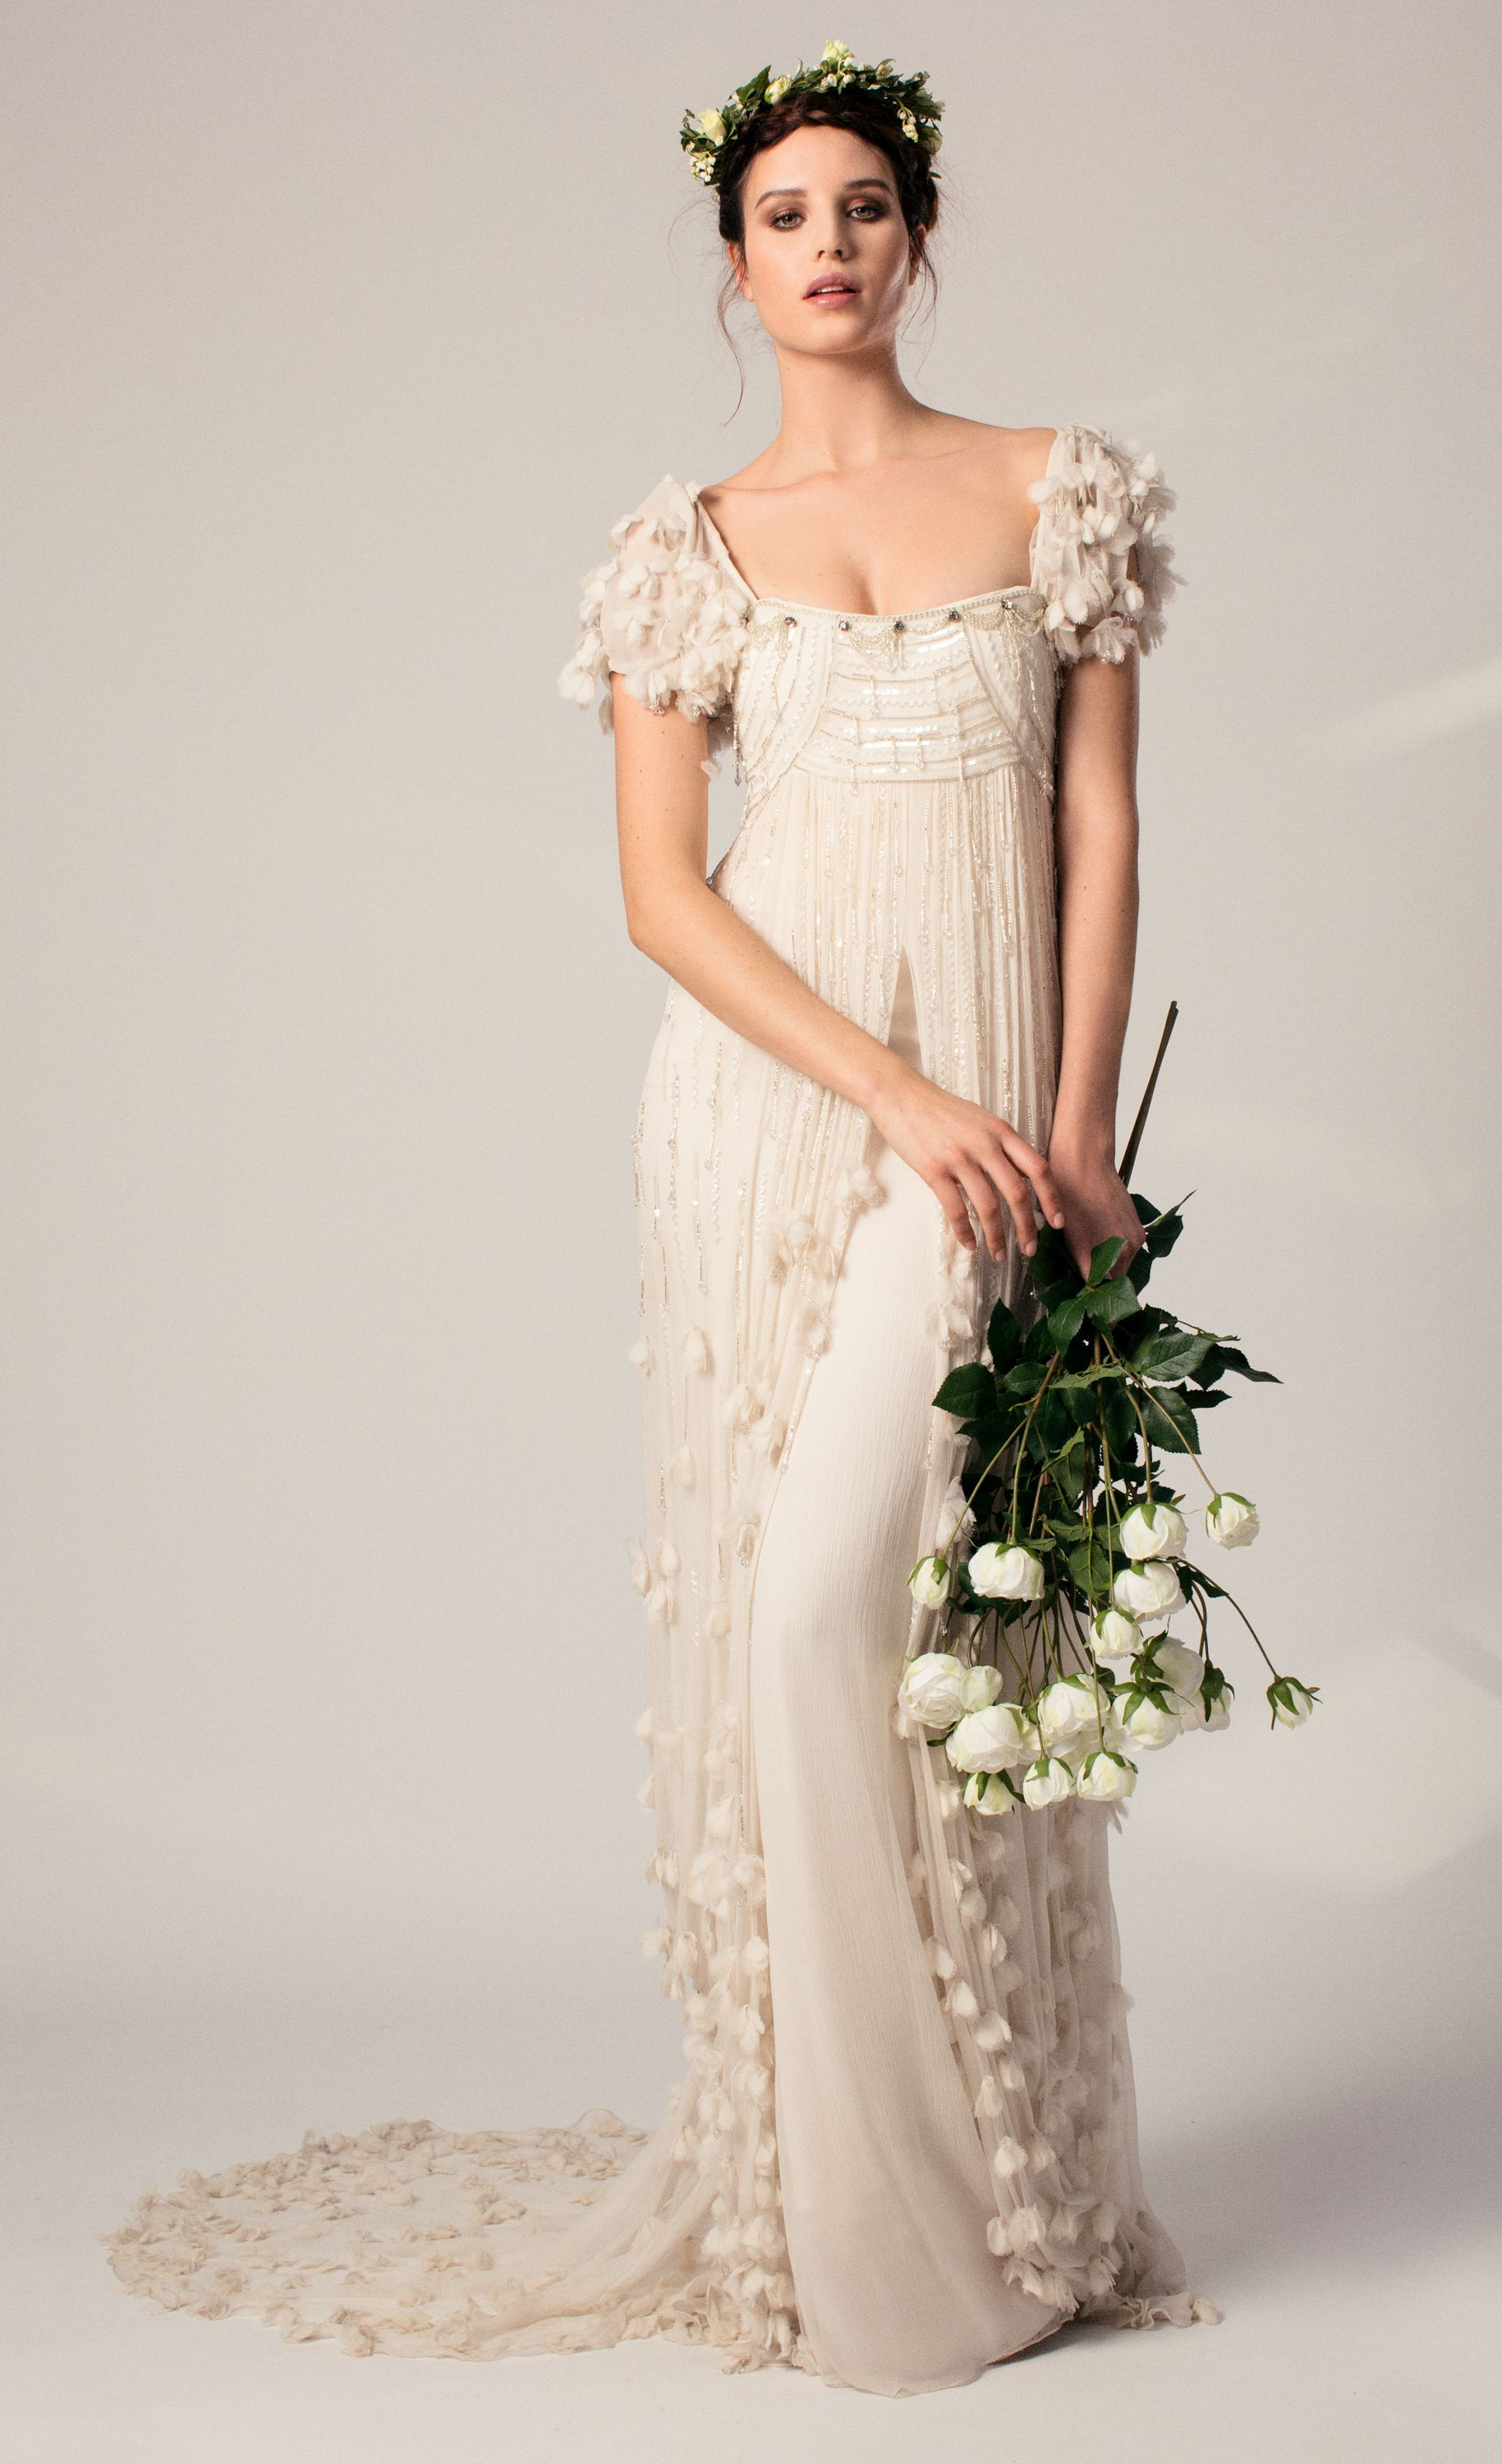 4a9c3f260ee9 Twinkle Dress from the Temperley Bridal Iris Collection